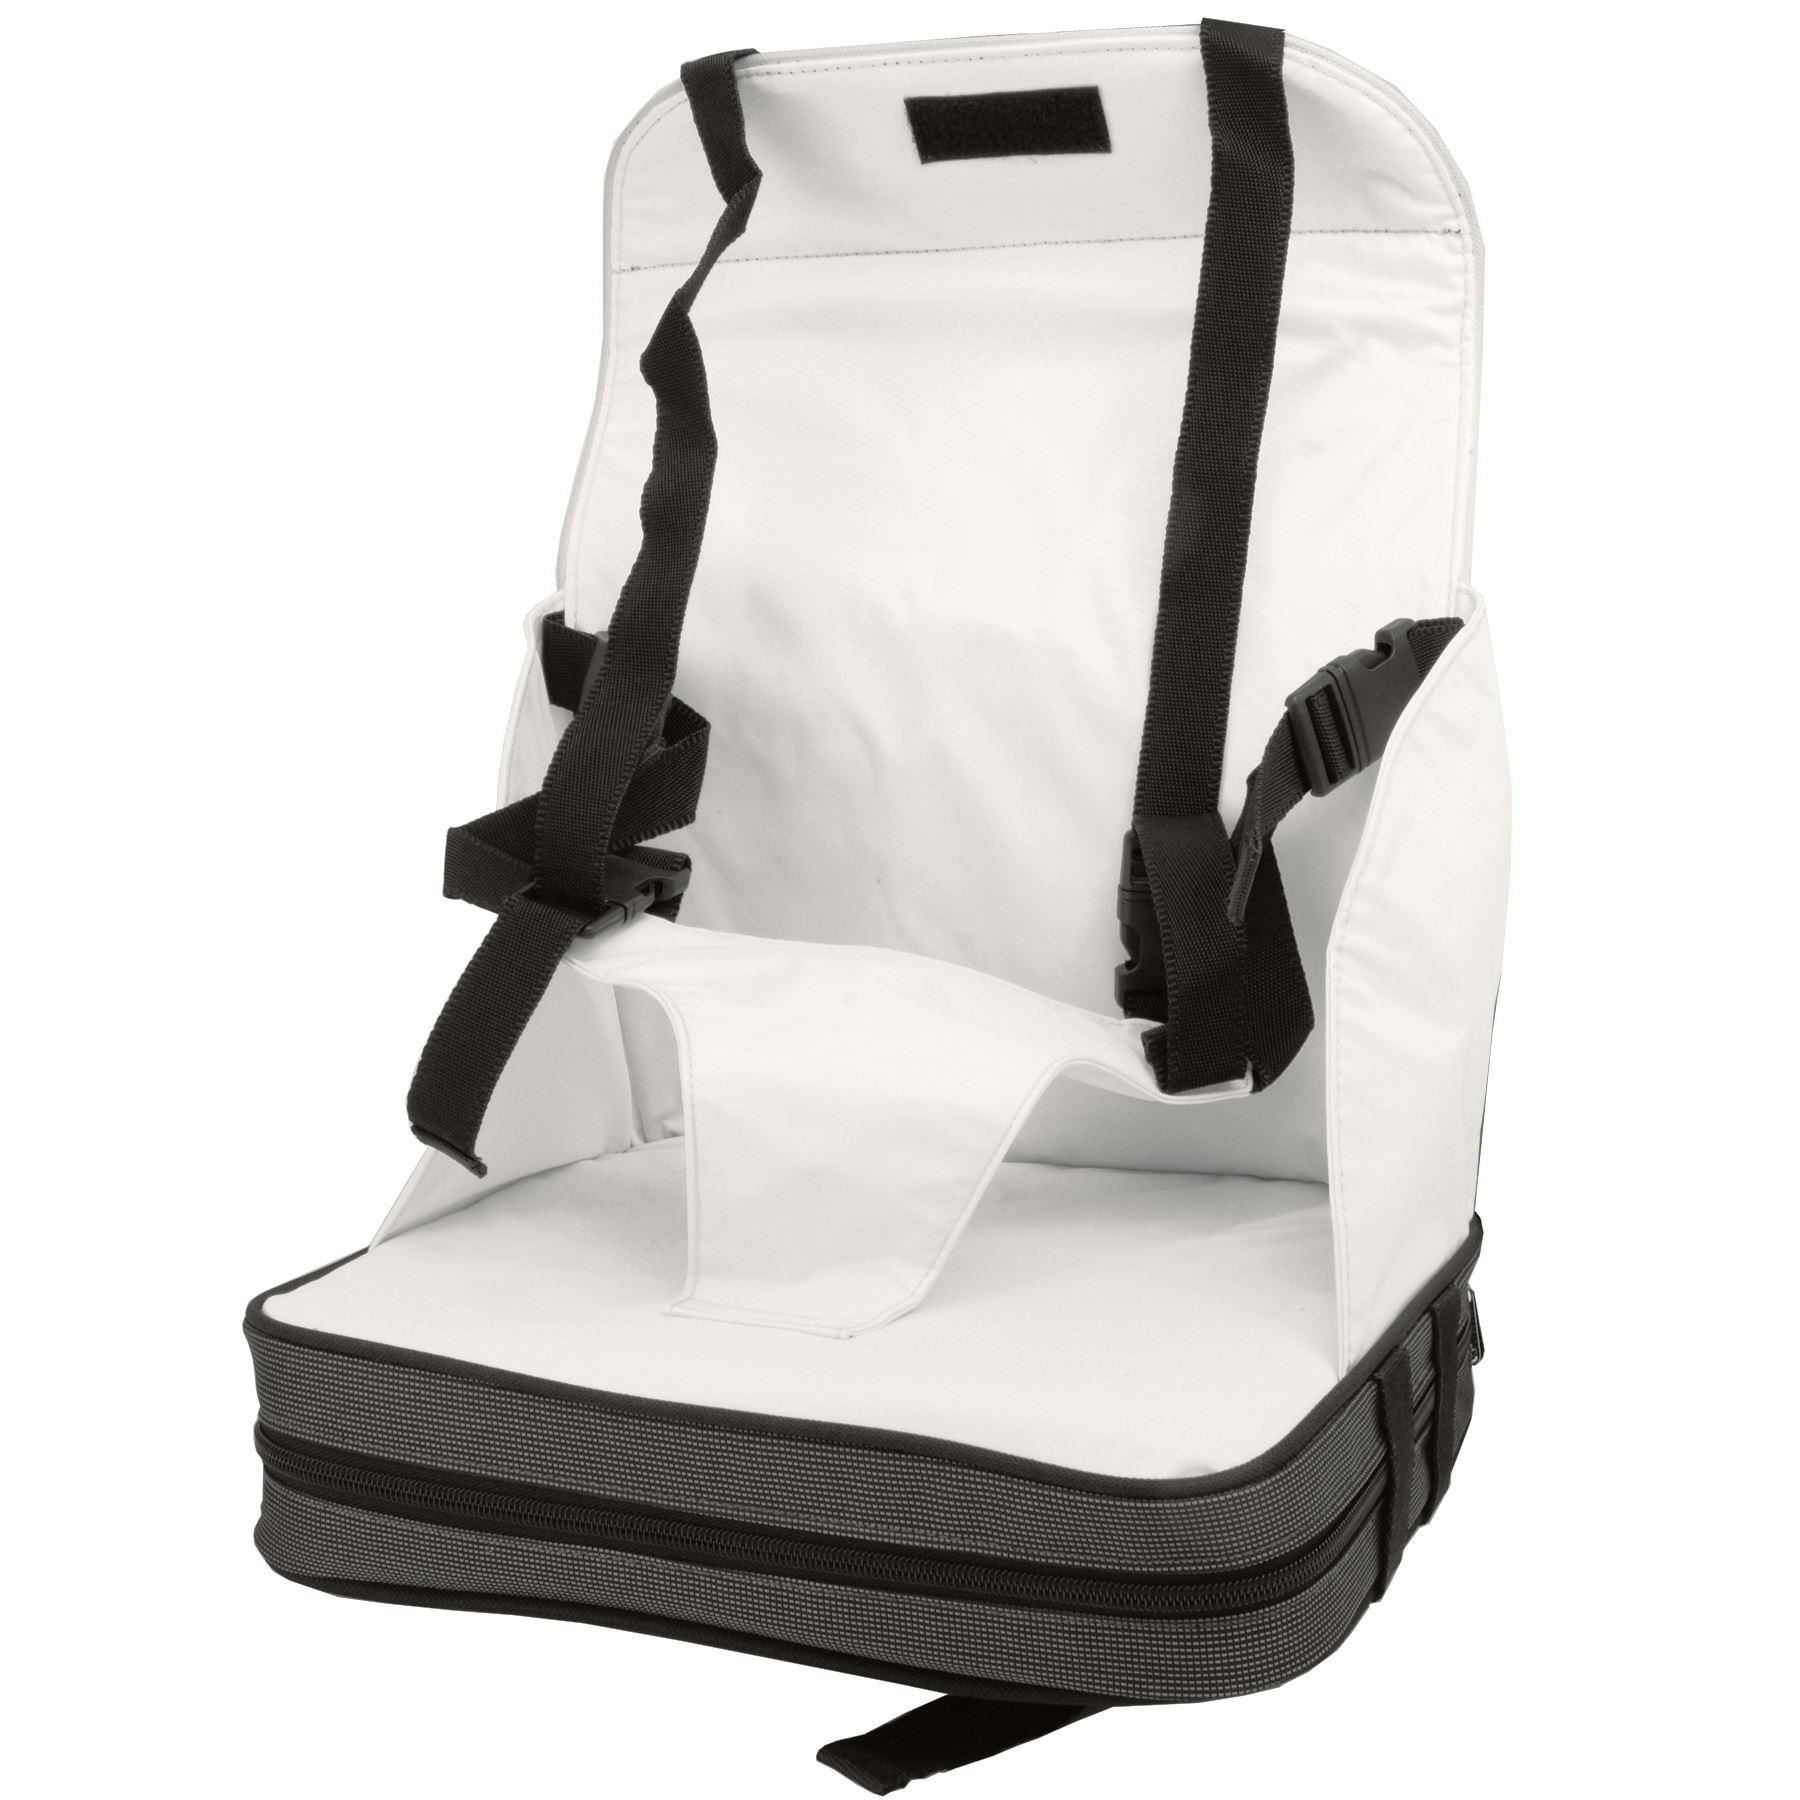 baby portable high chair safety harness folding malaysia babyhugs toddler foldable dining on